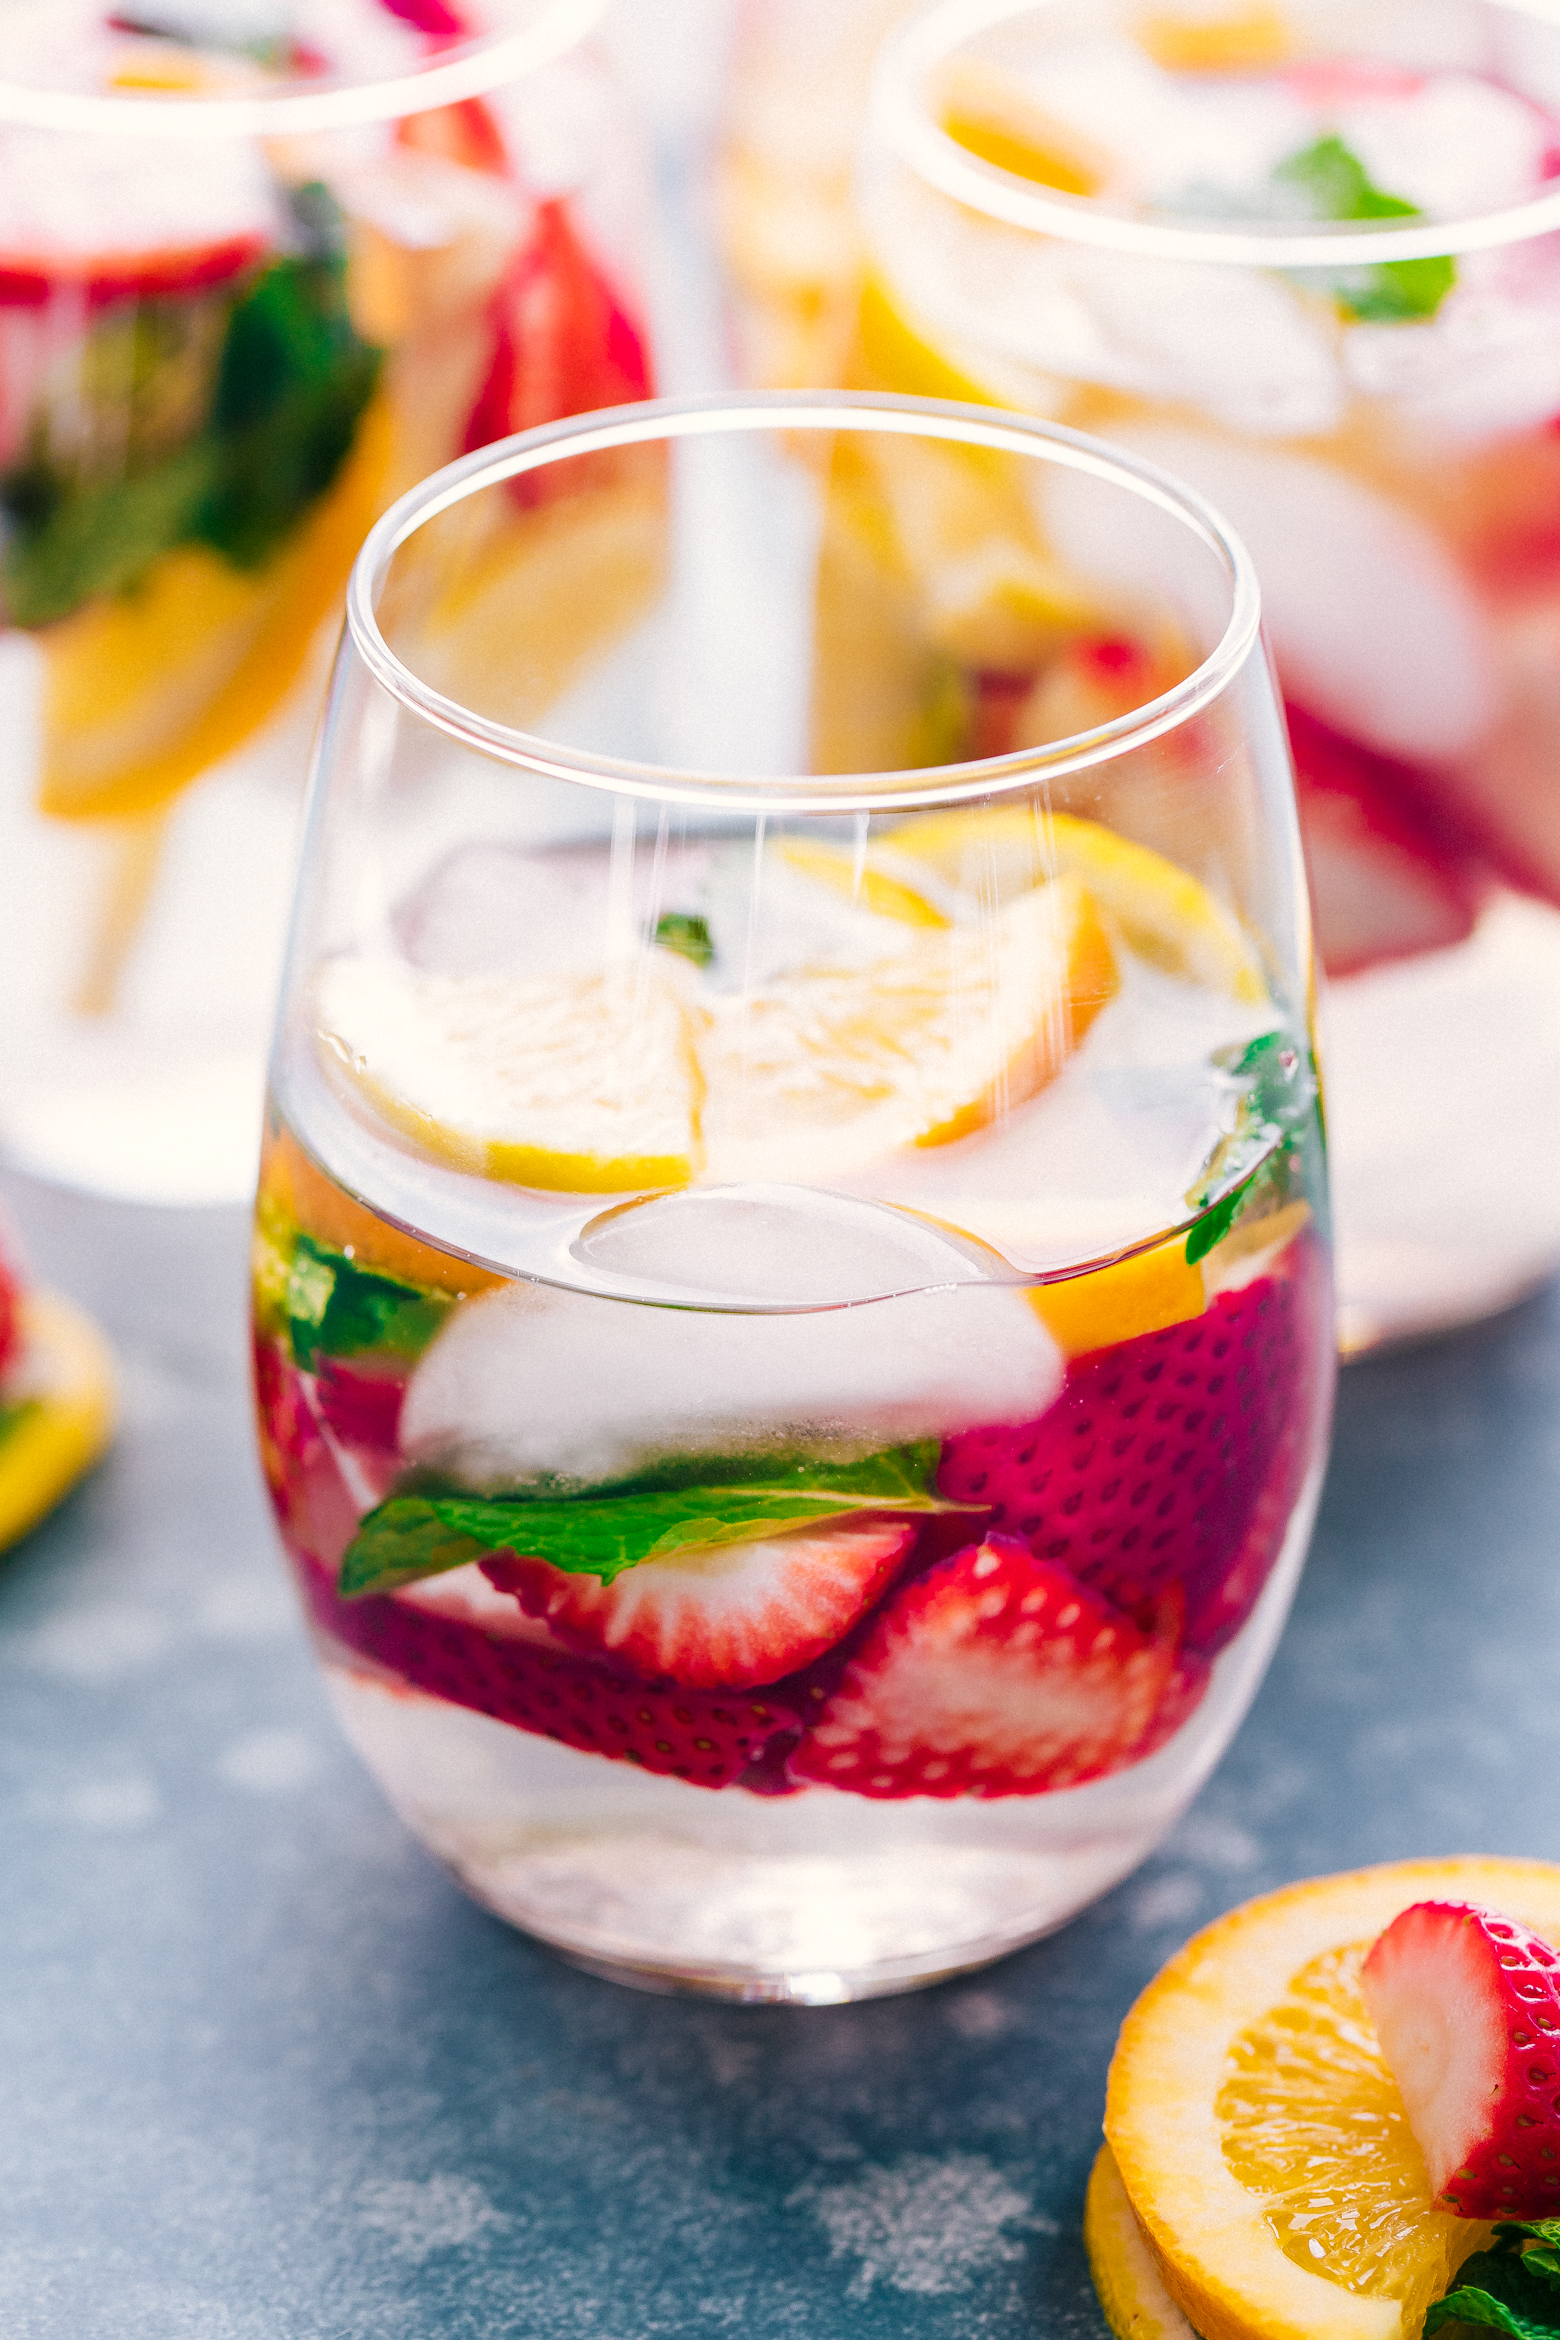 Detox Water with strawberries and lemons in a glass garnished with mint leaves